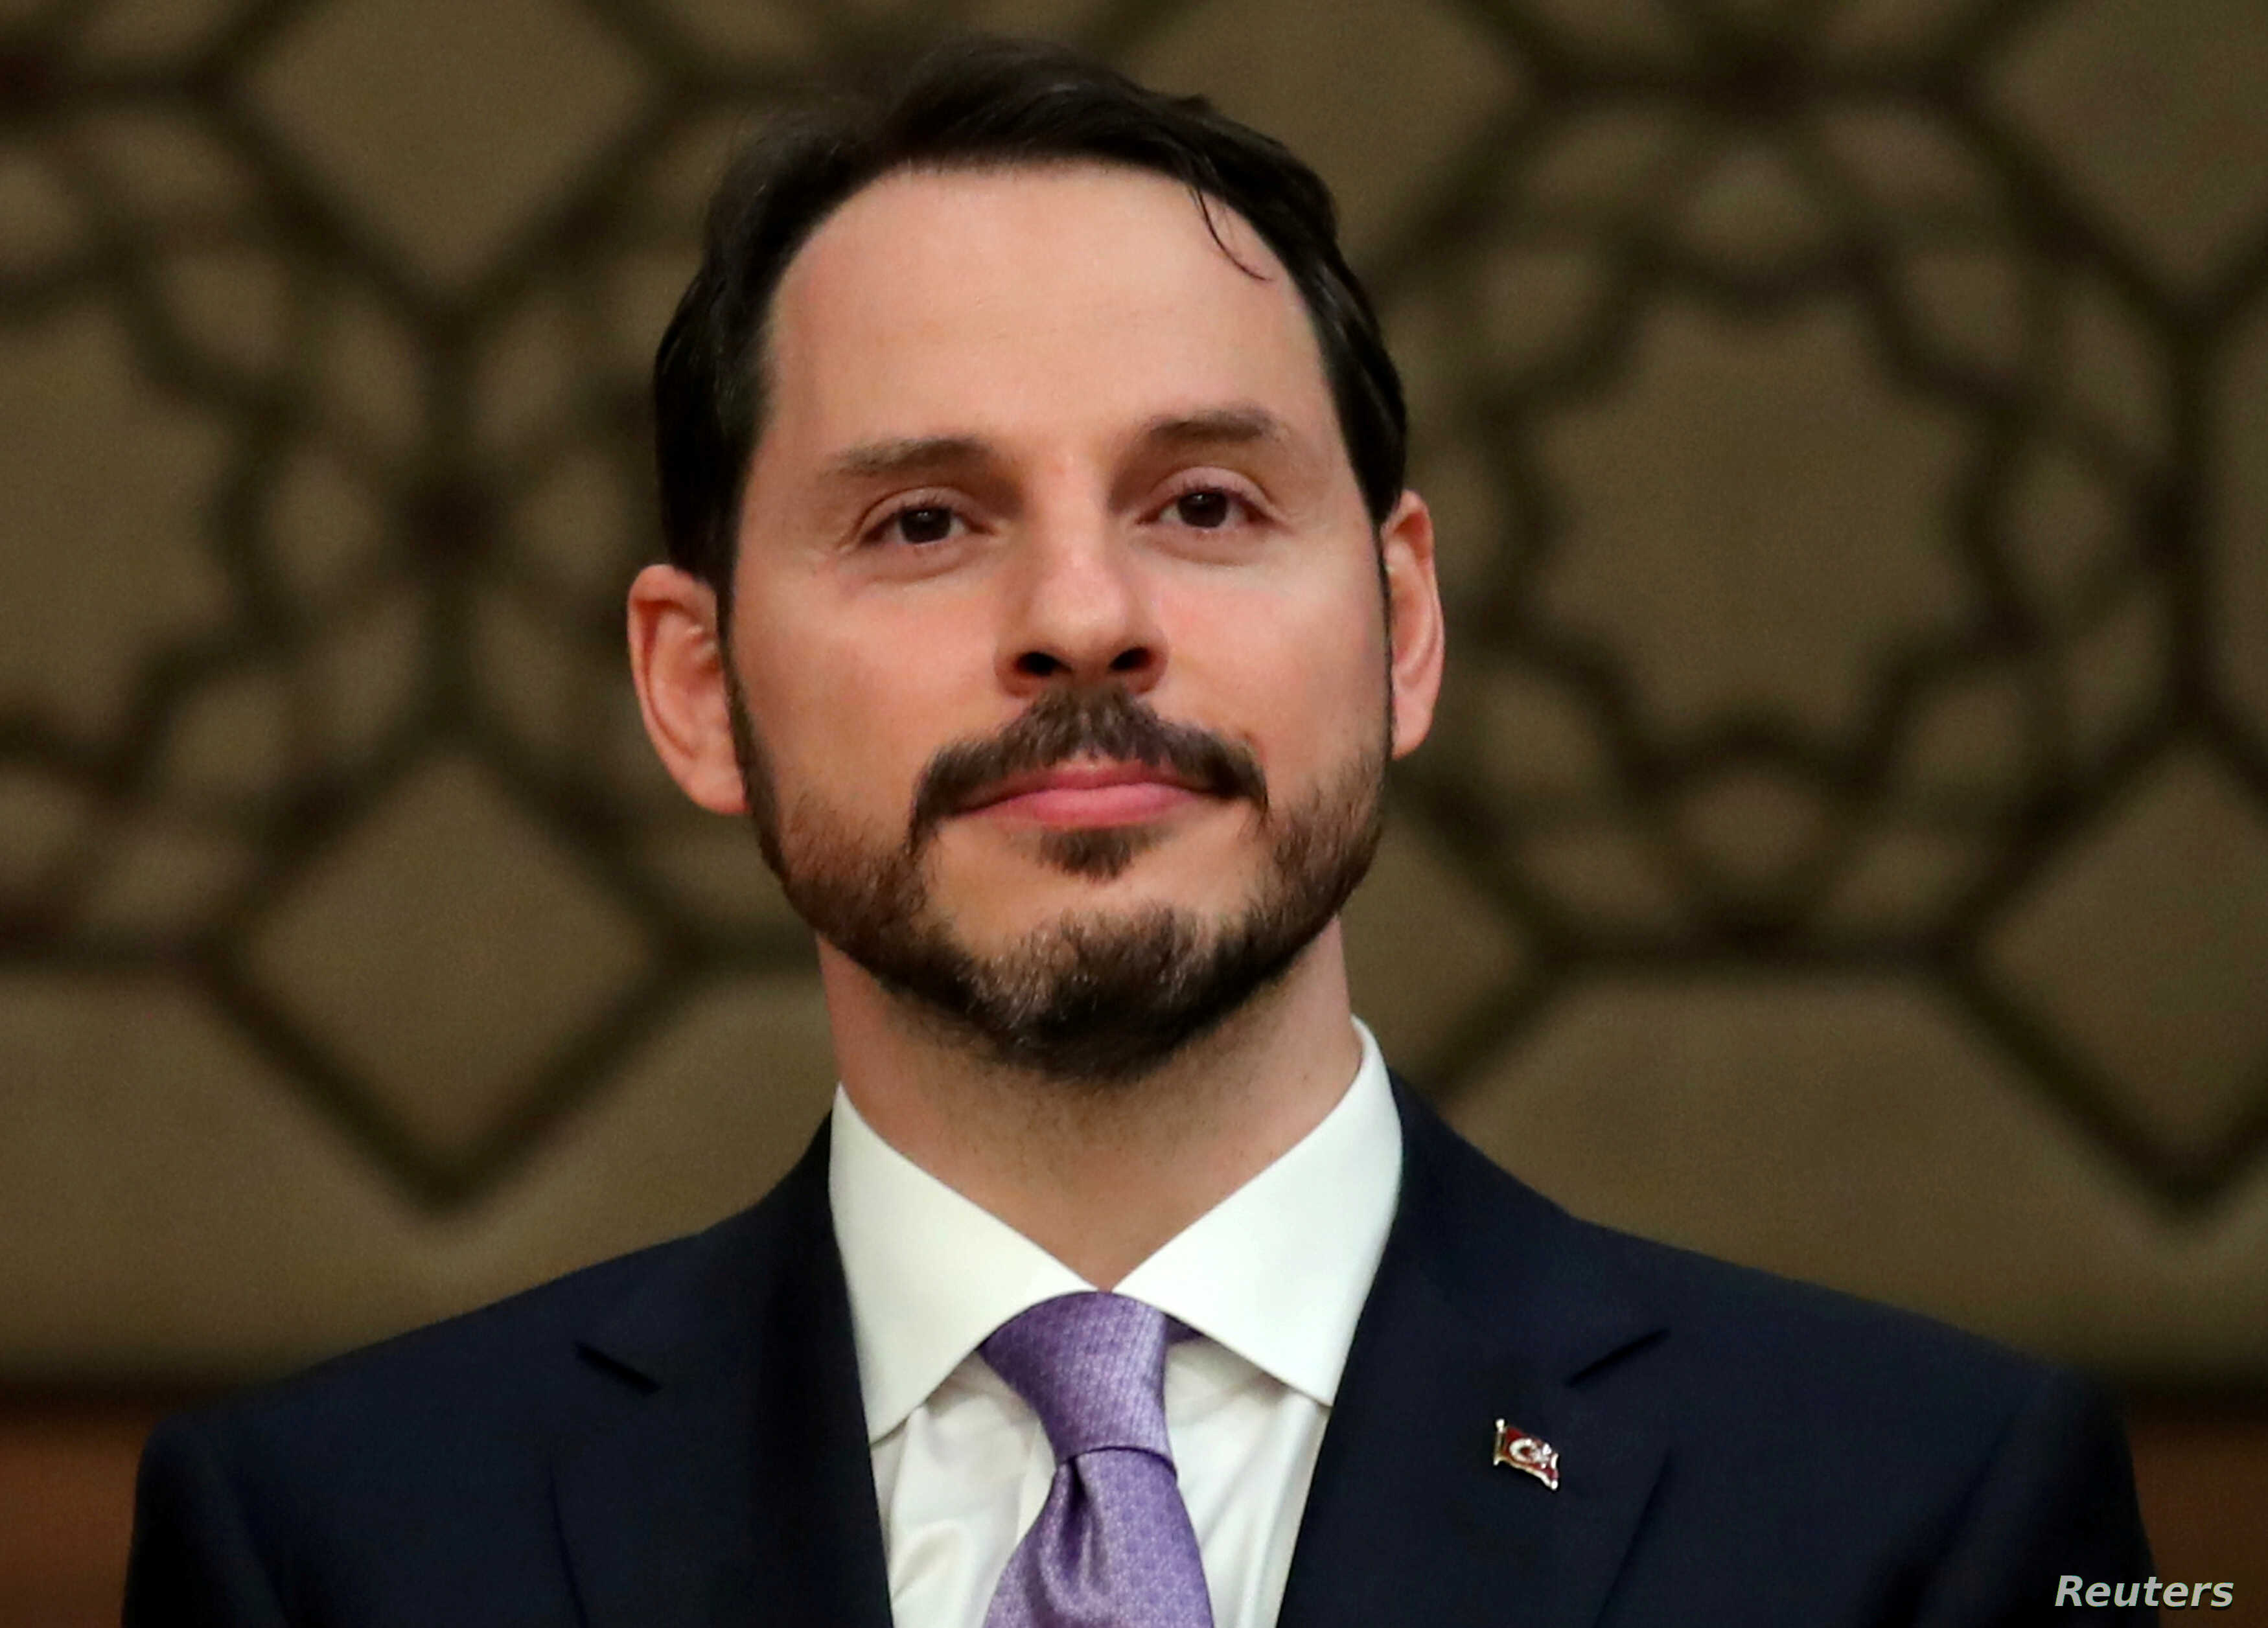 FILE : Turkish President Tayyip Erdogan's son-in-law and newly appointed Treasury and Finance Minister Berat Albayrak attends a news conference at the Presidential Palace in Ankara, Turkey, July 9, 2018.